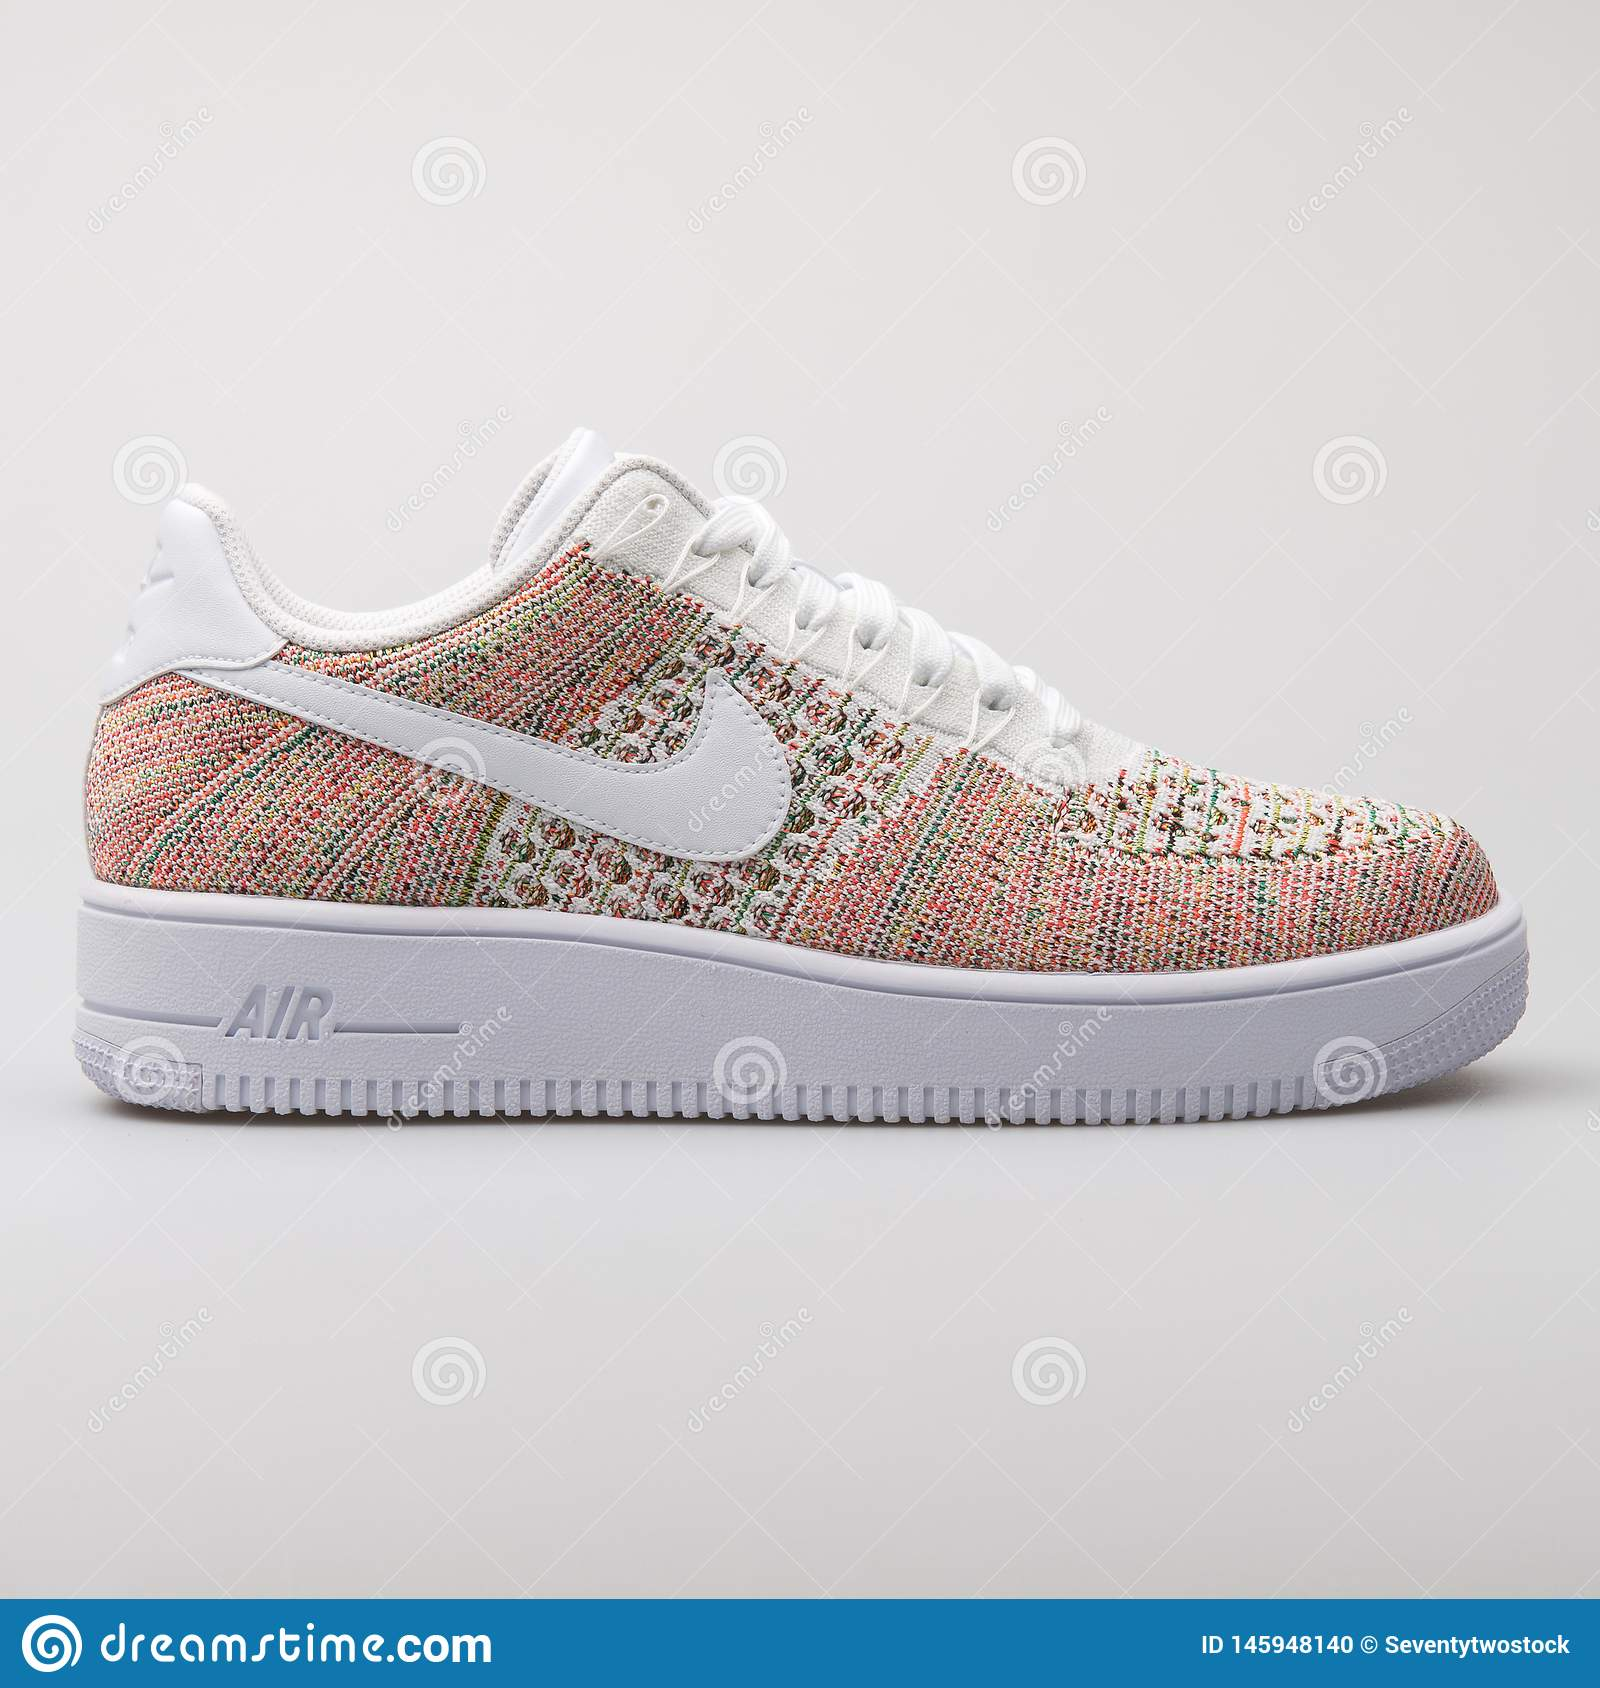 reputable site 77281 bd0f5 Nike Air Force 1 Ultra Flyknit Low Yellow Strike And White ...